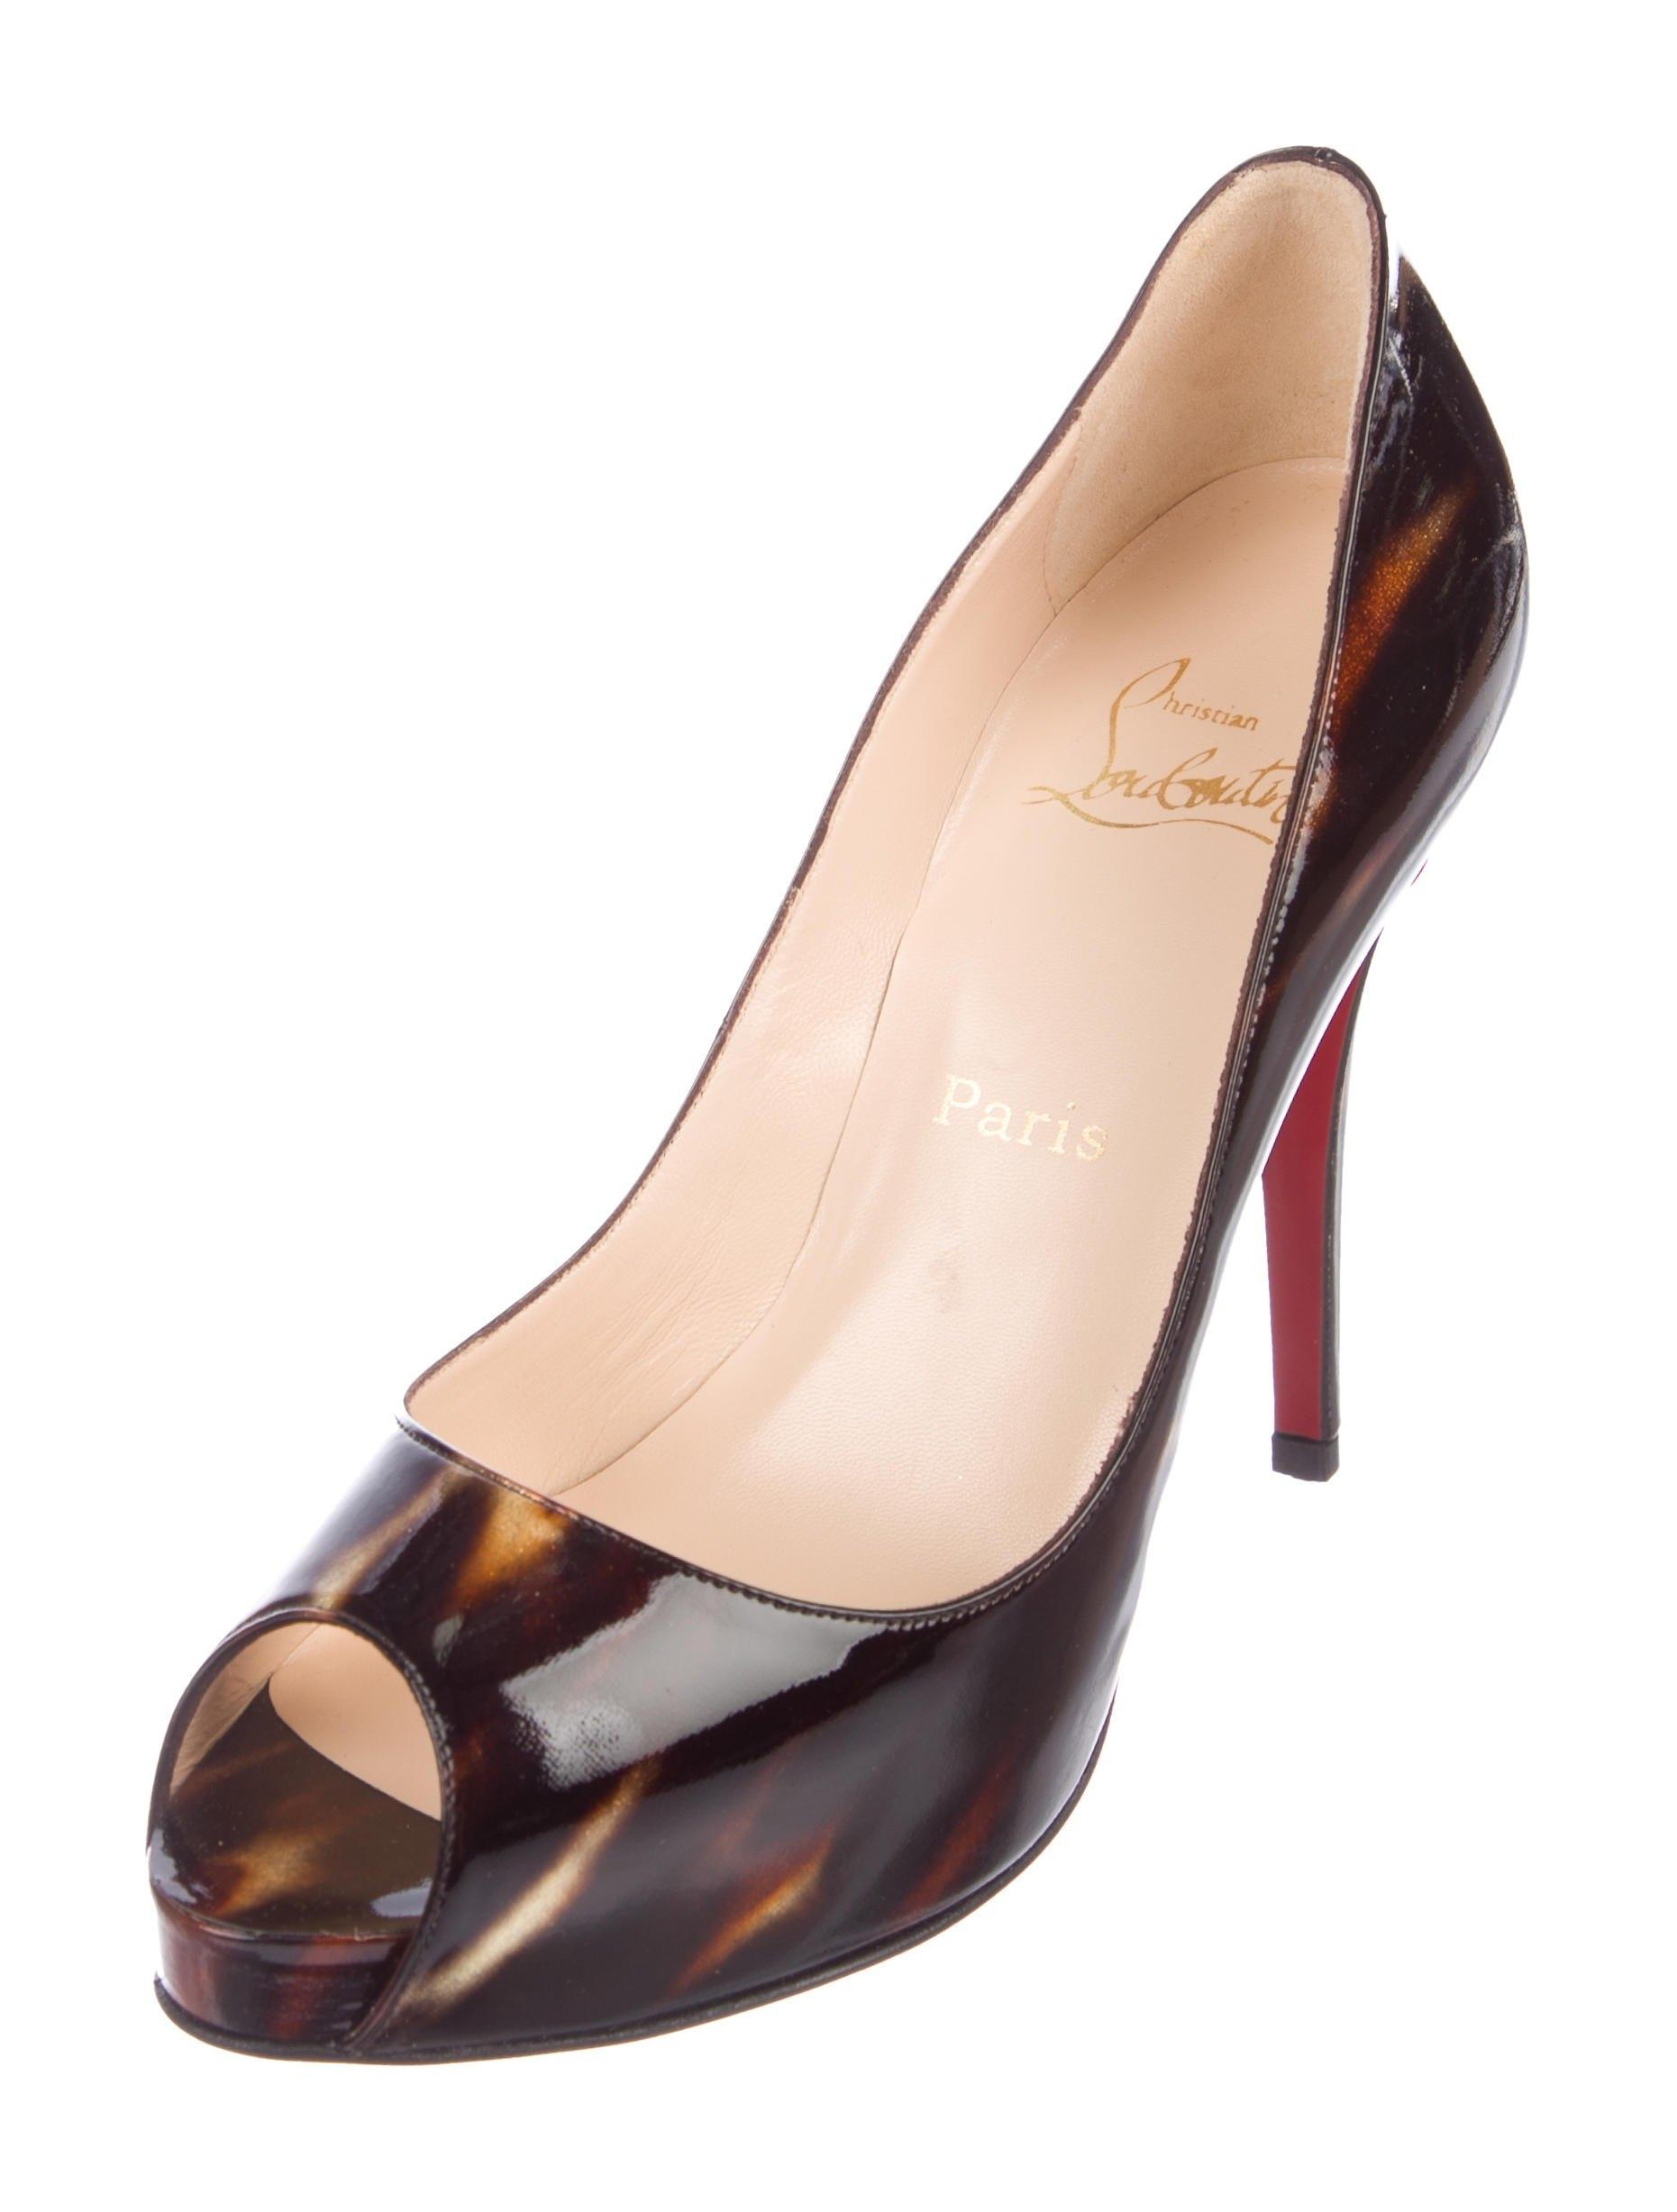 0e3ec24bee11 Christian Louboutin New Very Prive 120 Patent 9 Pumps Size Size Size EU 39  (Approx